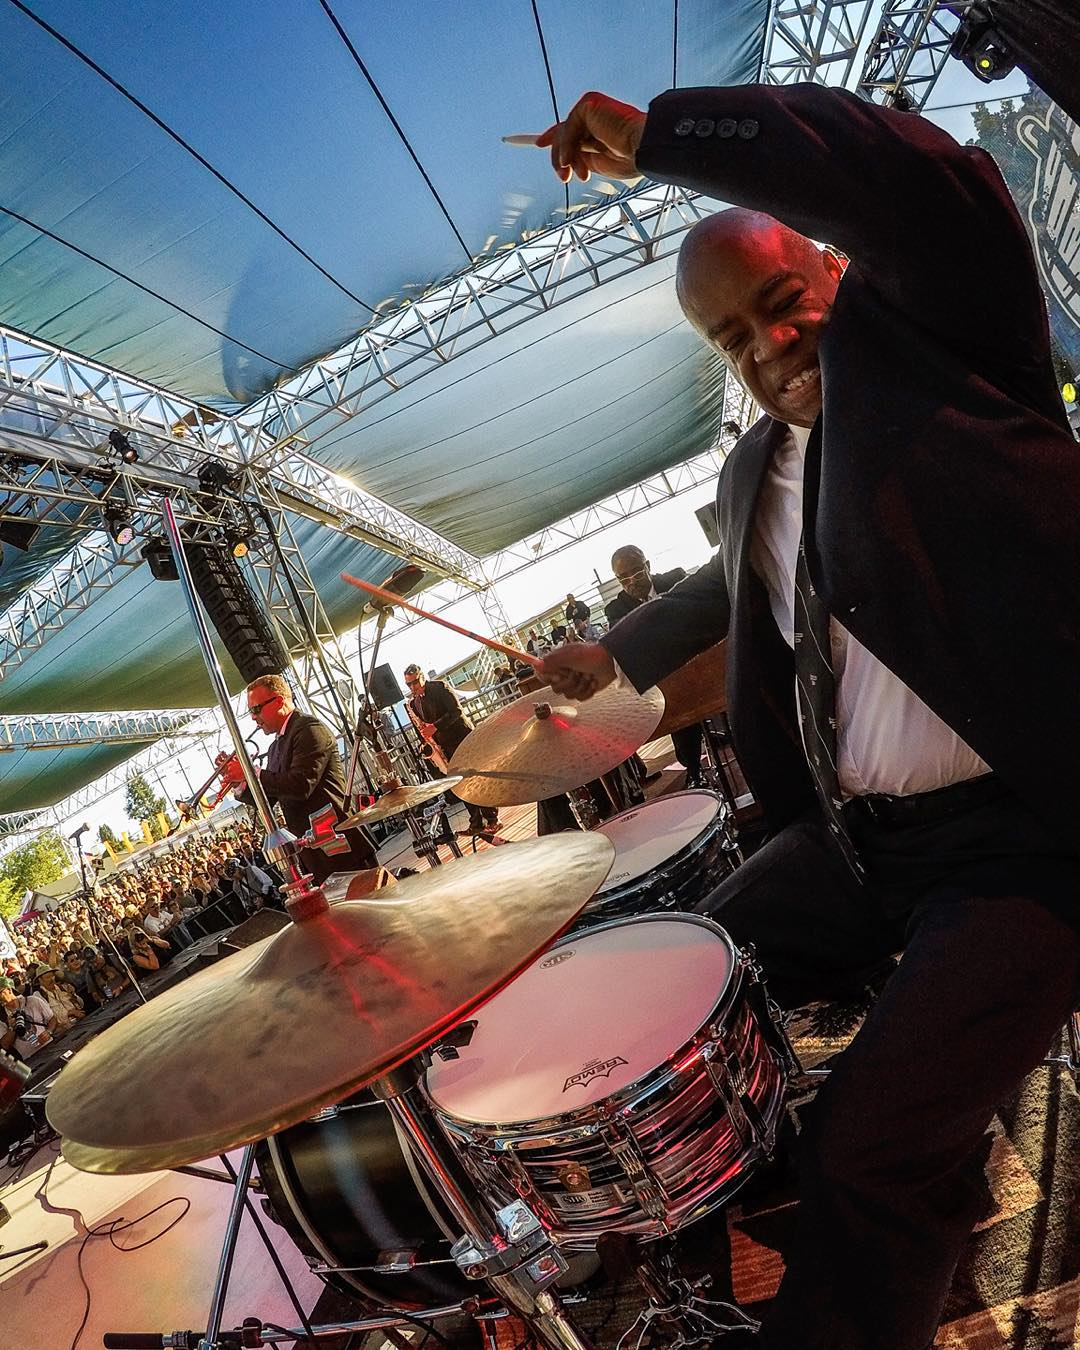 @joefishsticks of the @preshallband spreading New Orleans-style Jazz to the people! The Preservation Hall Jazz Band was founded in the French Quarter of New Orleans and now tours the world more than 150 days a year. #GoProMusic #MusicMonday